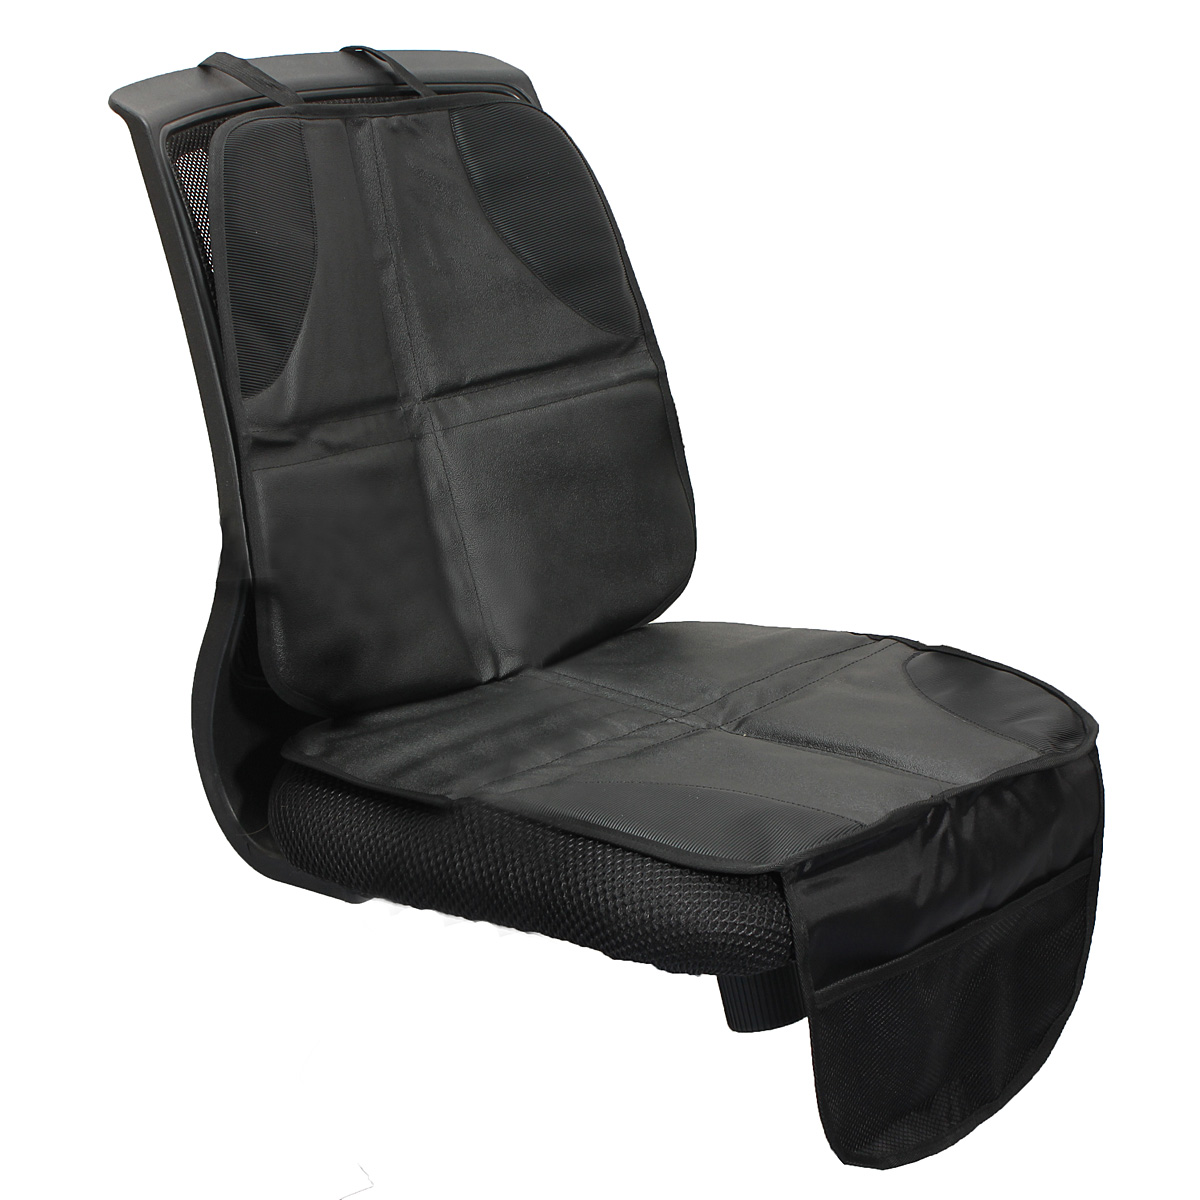 auto car seat cover cushion warm massage baby infant child chair pad mat protector safety black walmartcom